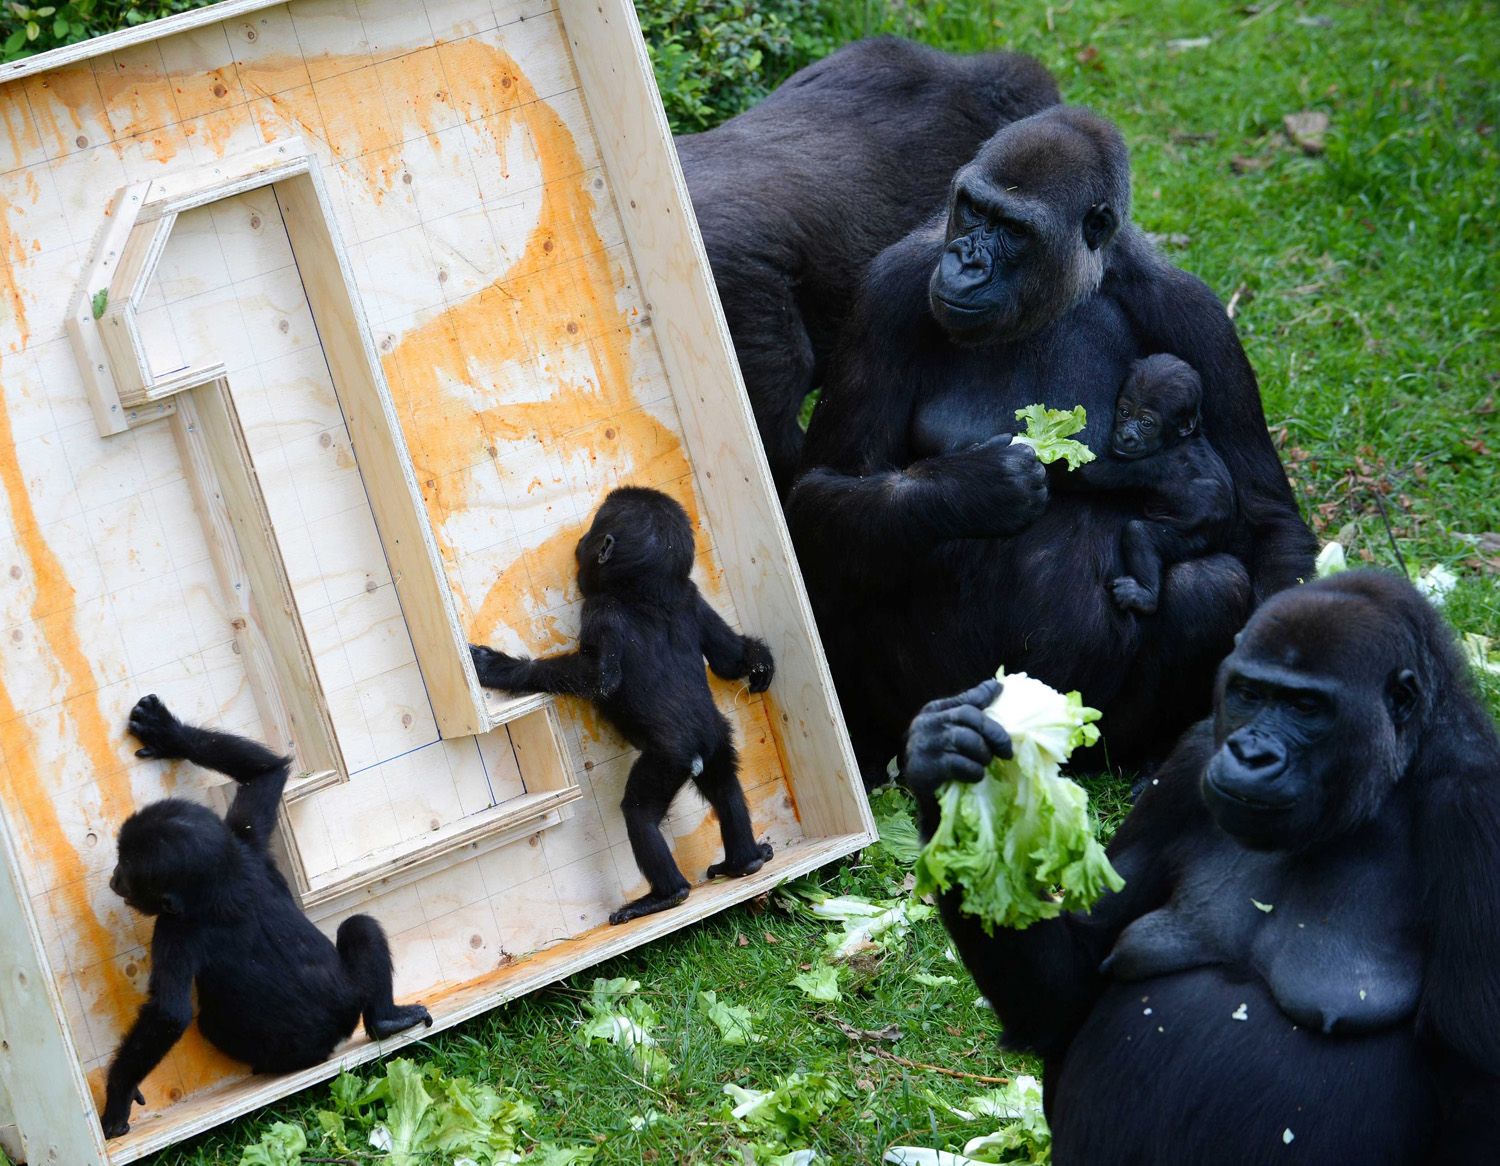 Two Gorilla twin babies 'celebrate' their birthday as they play in the Burgers' Zoo in Arnhem, Netherlands on June 13, 2014.